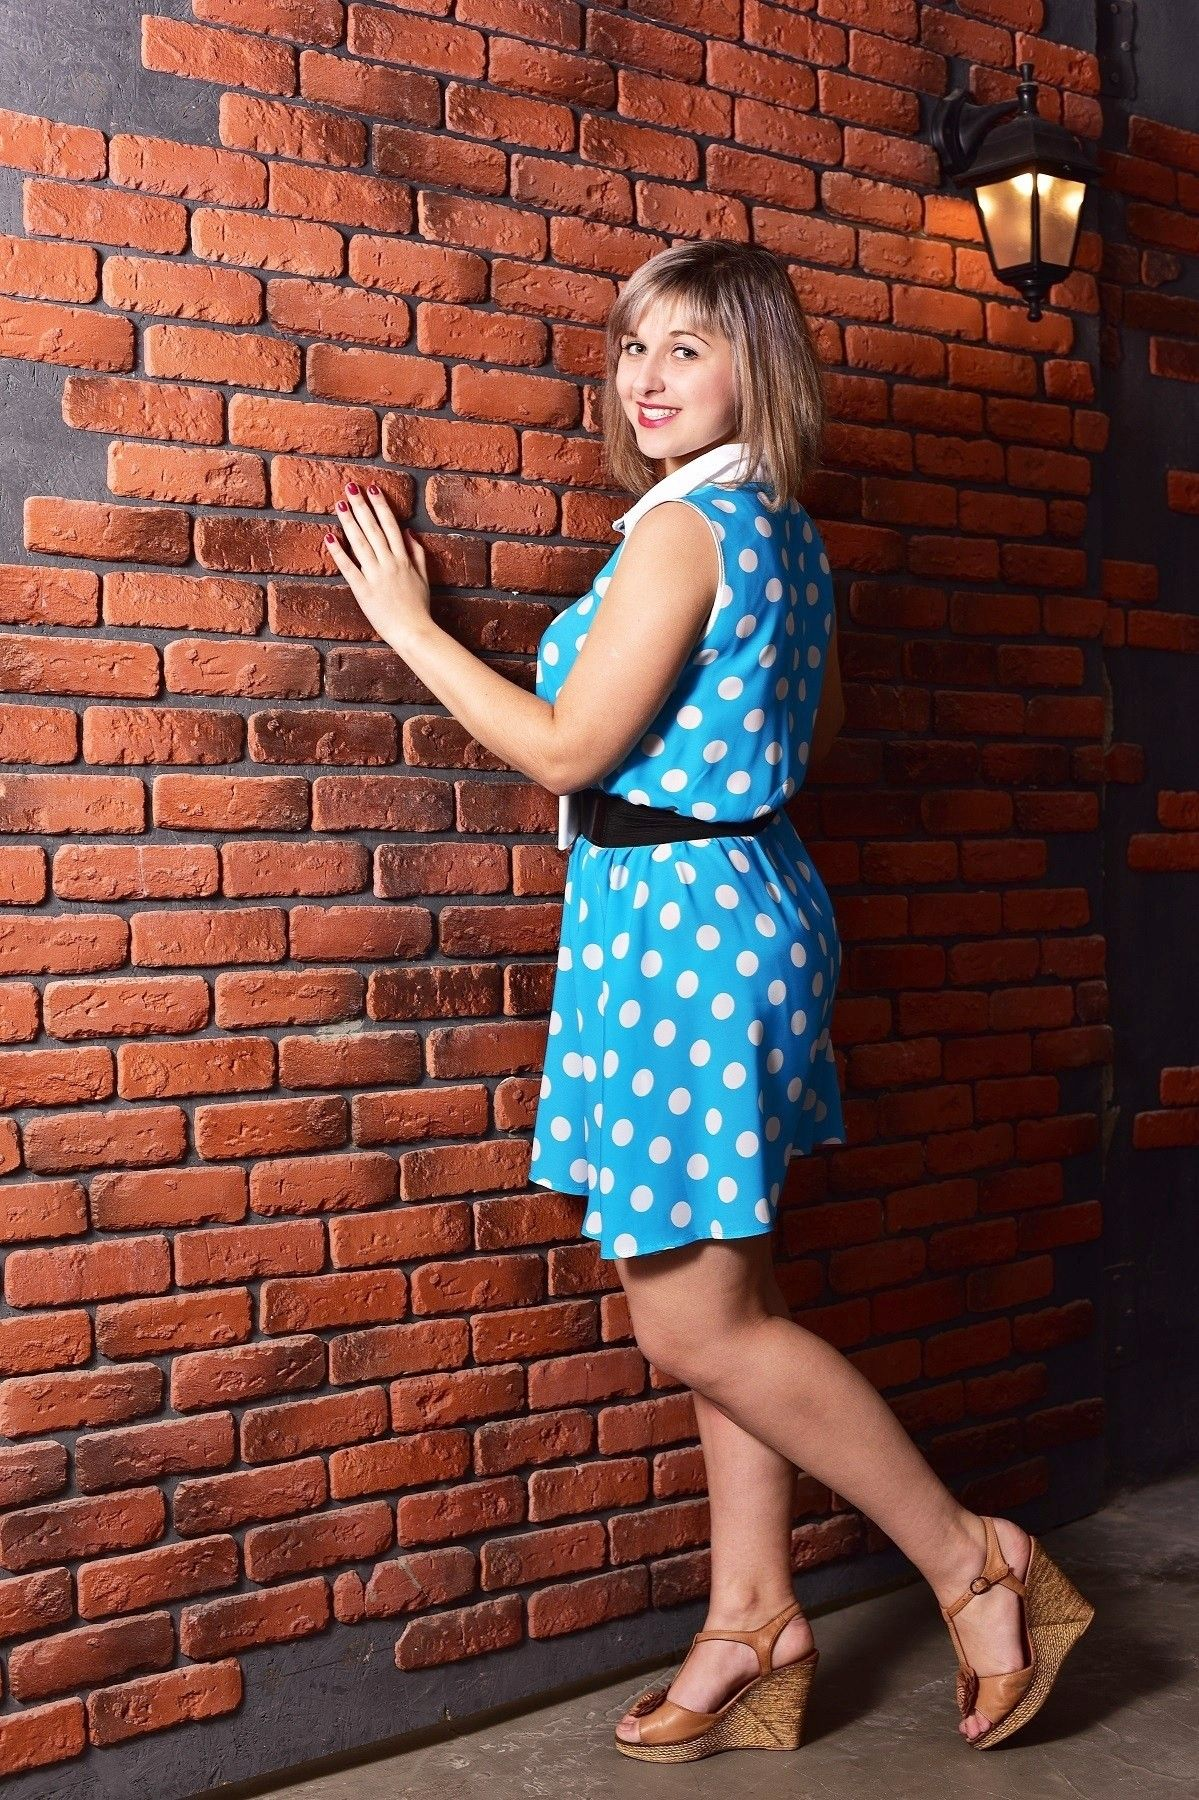 free dating sites in coventry